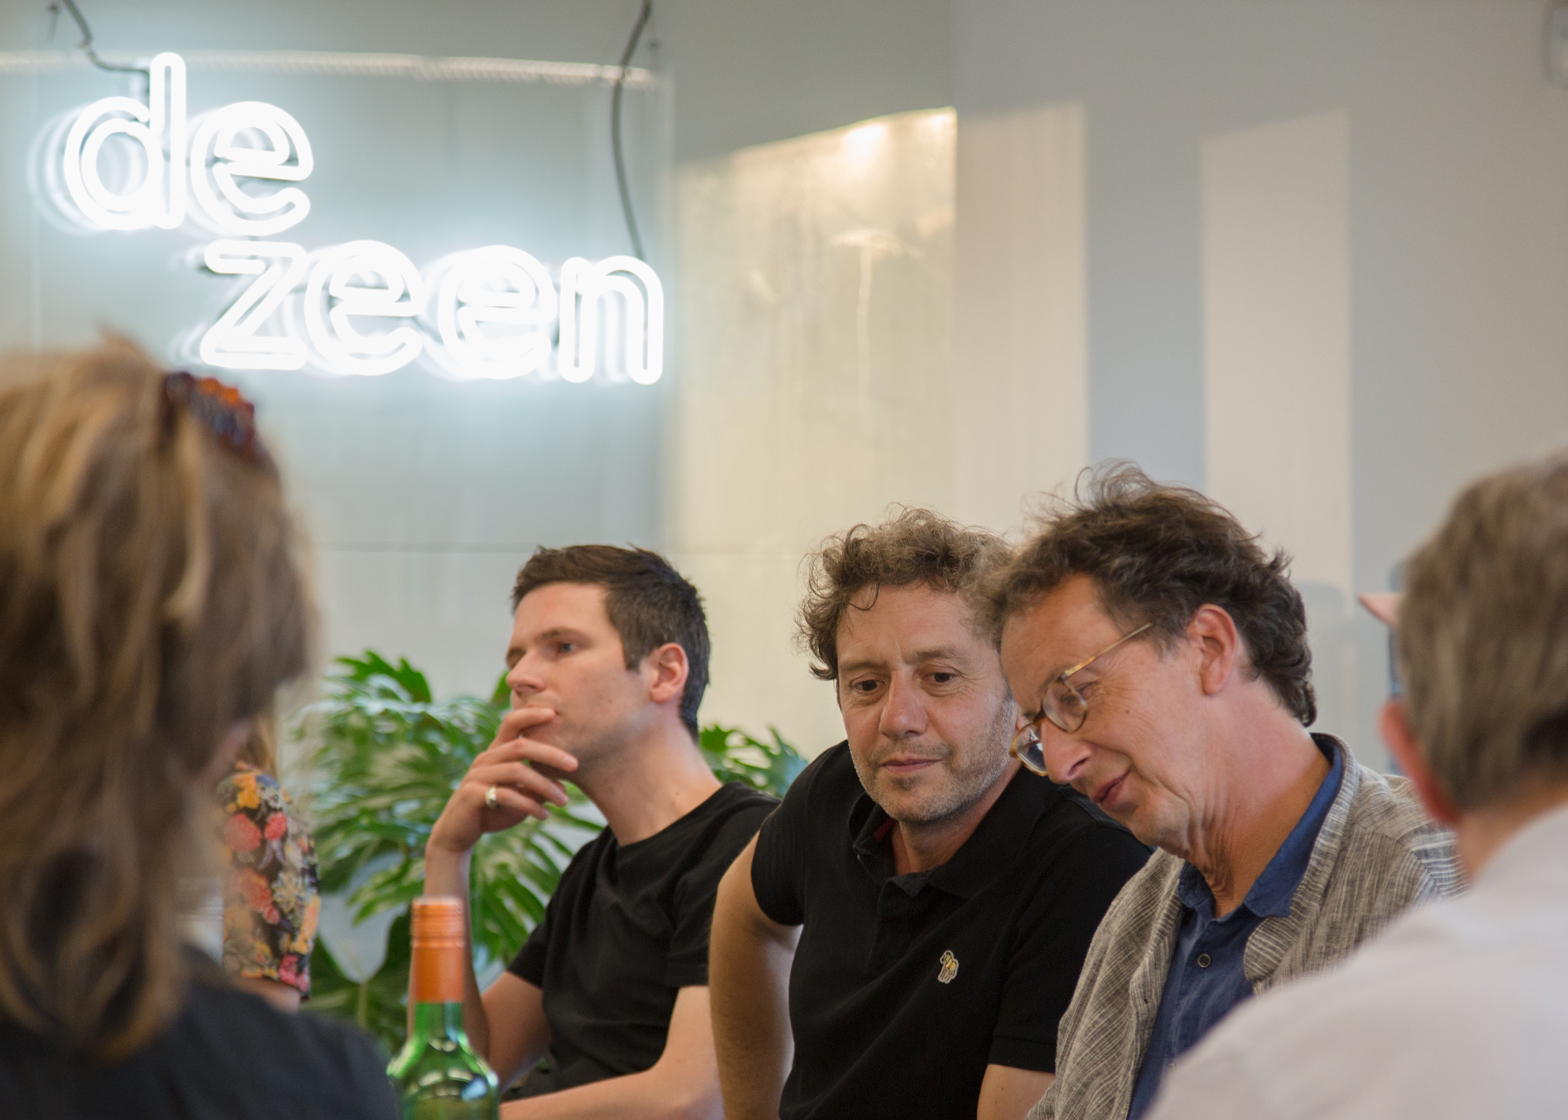 Leading figures from the architecture and design sector convened at Dezeen's office to discuss an action plan following Brexit